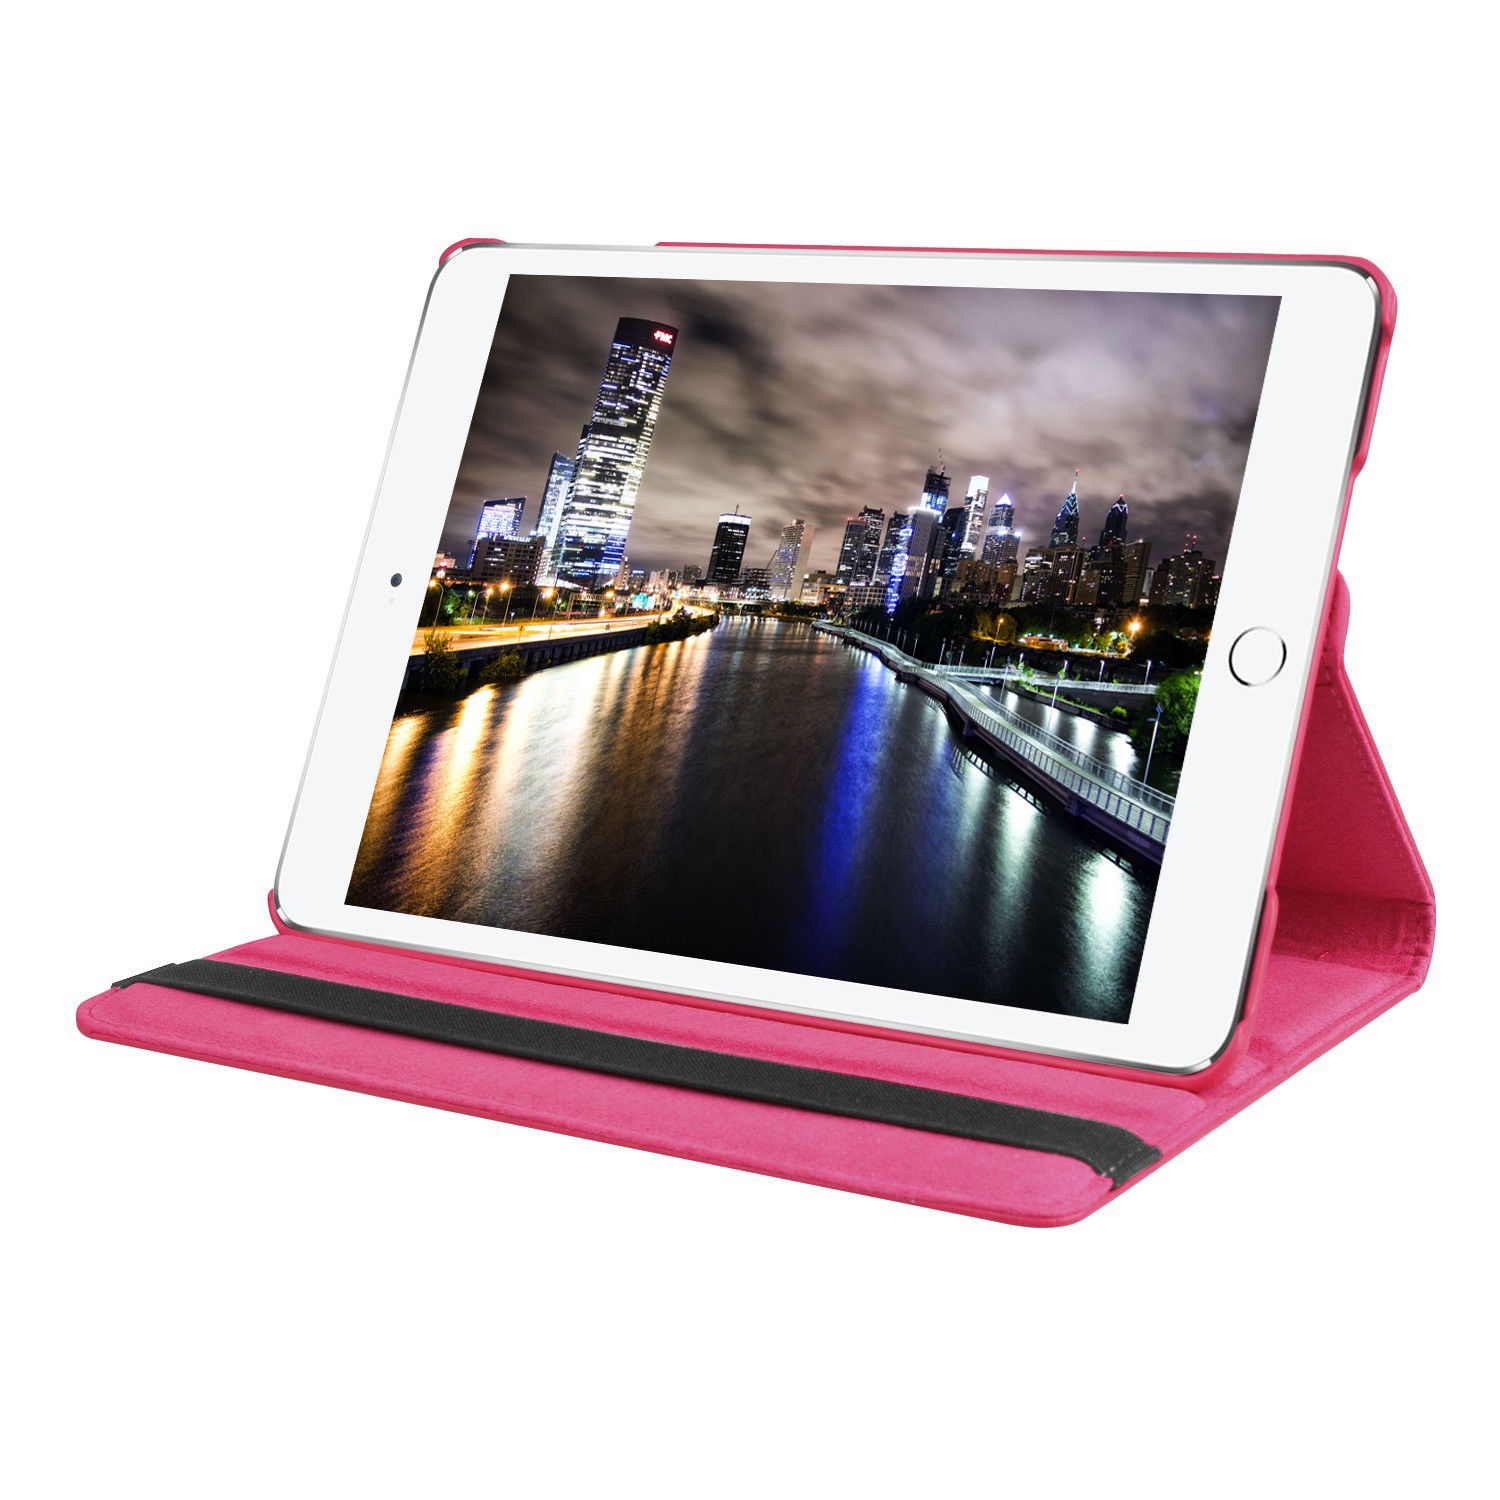 Custodia-per-Apple-iPad-Pro-2017-iPad-Air-3-10-5-Smart-Cover-Case-Custodia-Protettiva miniatura 40